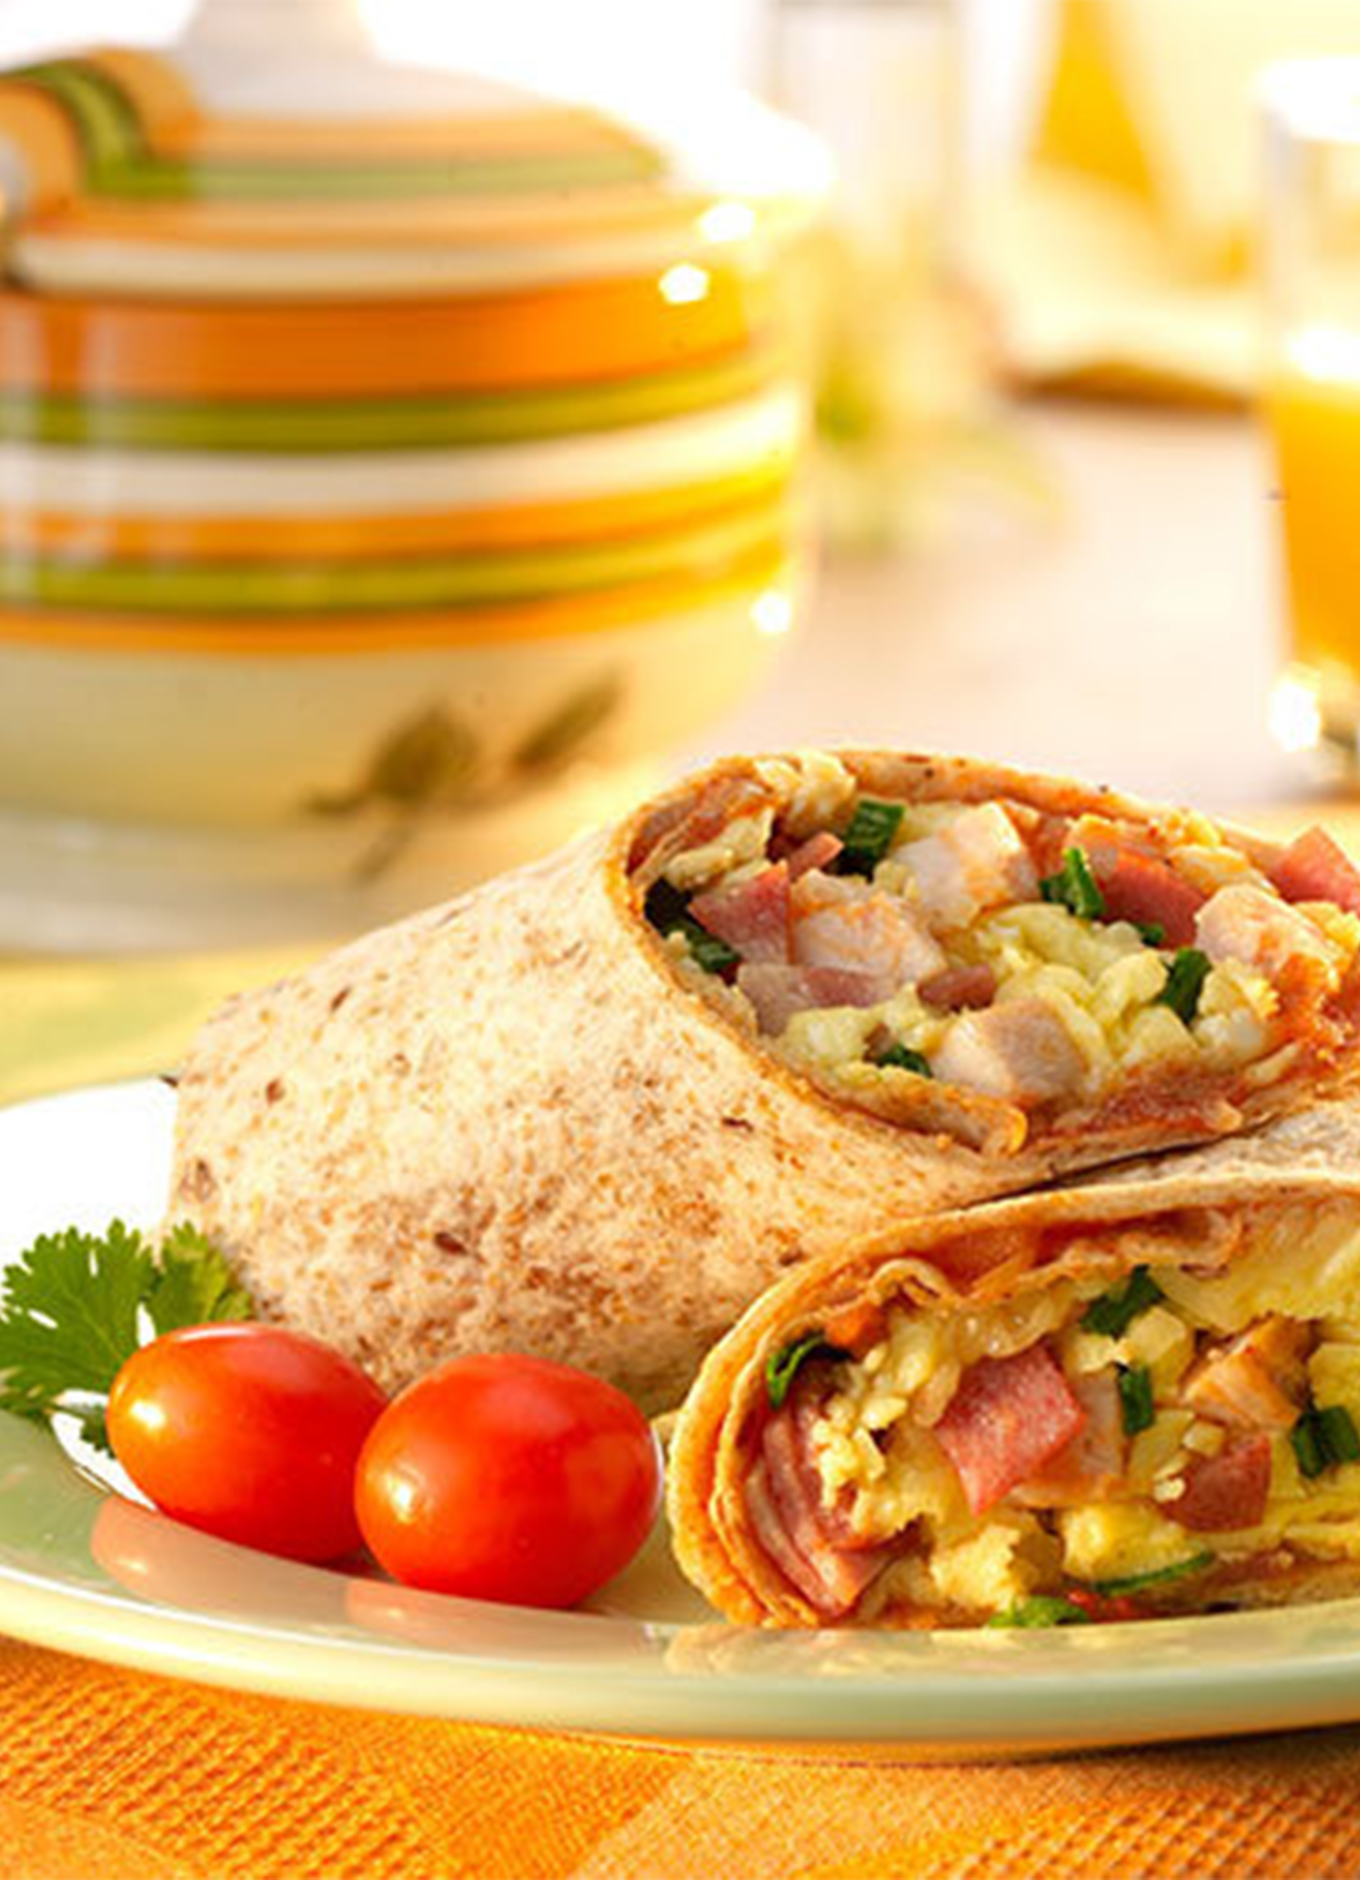 A sunny breakfast table setting with orange juice and aplated breakfast burrito served with fresh vegetables